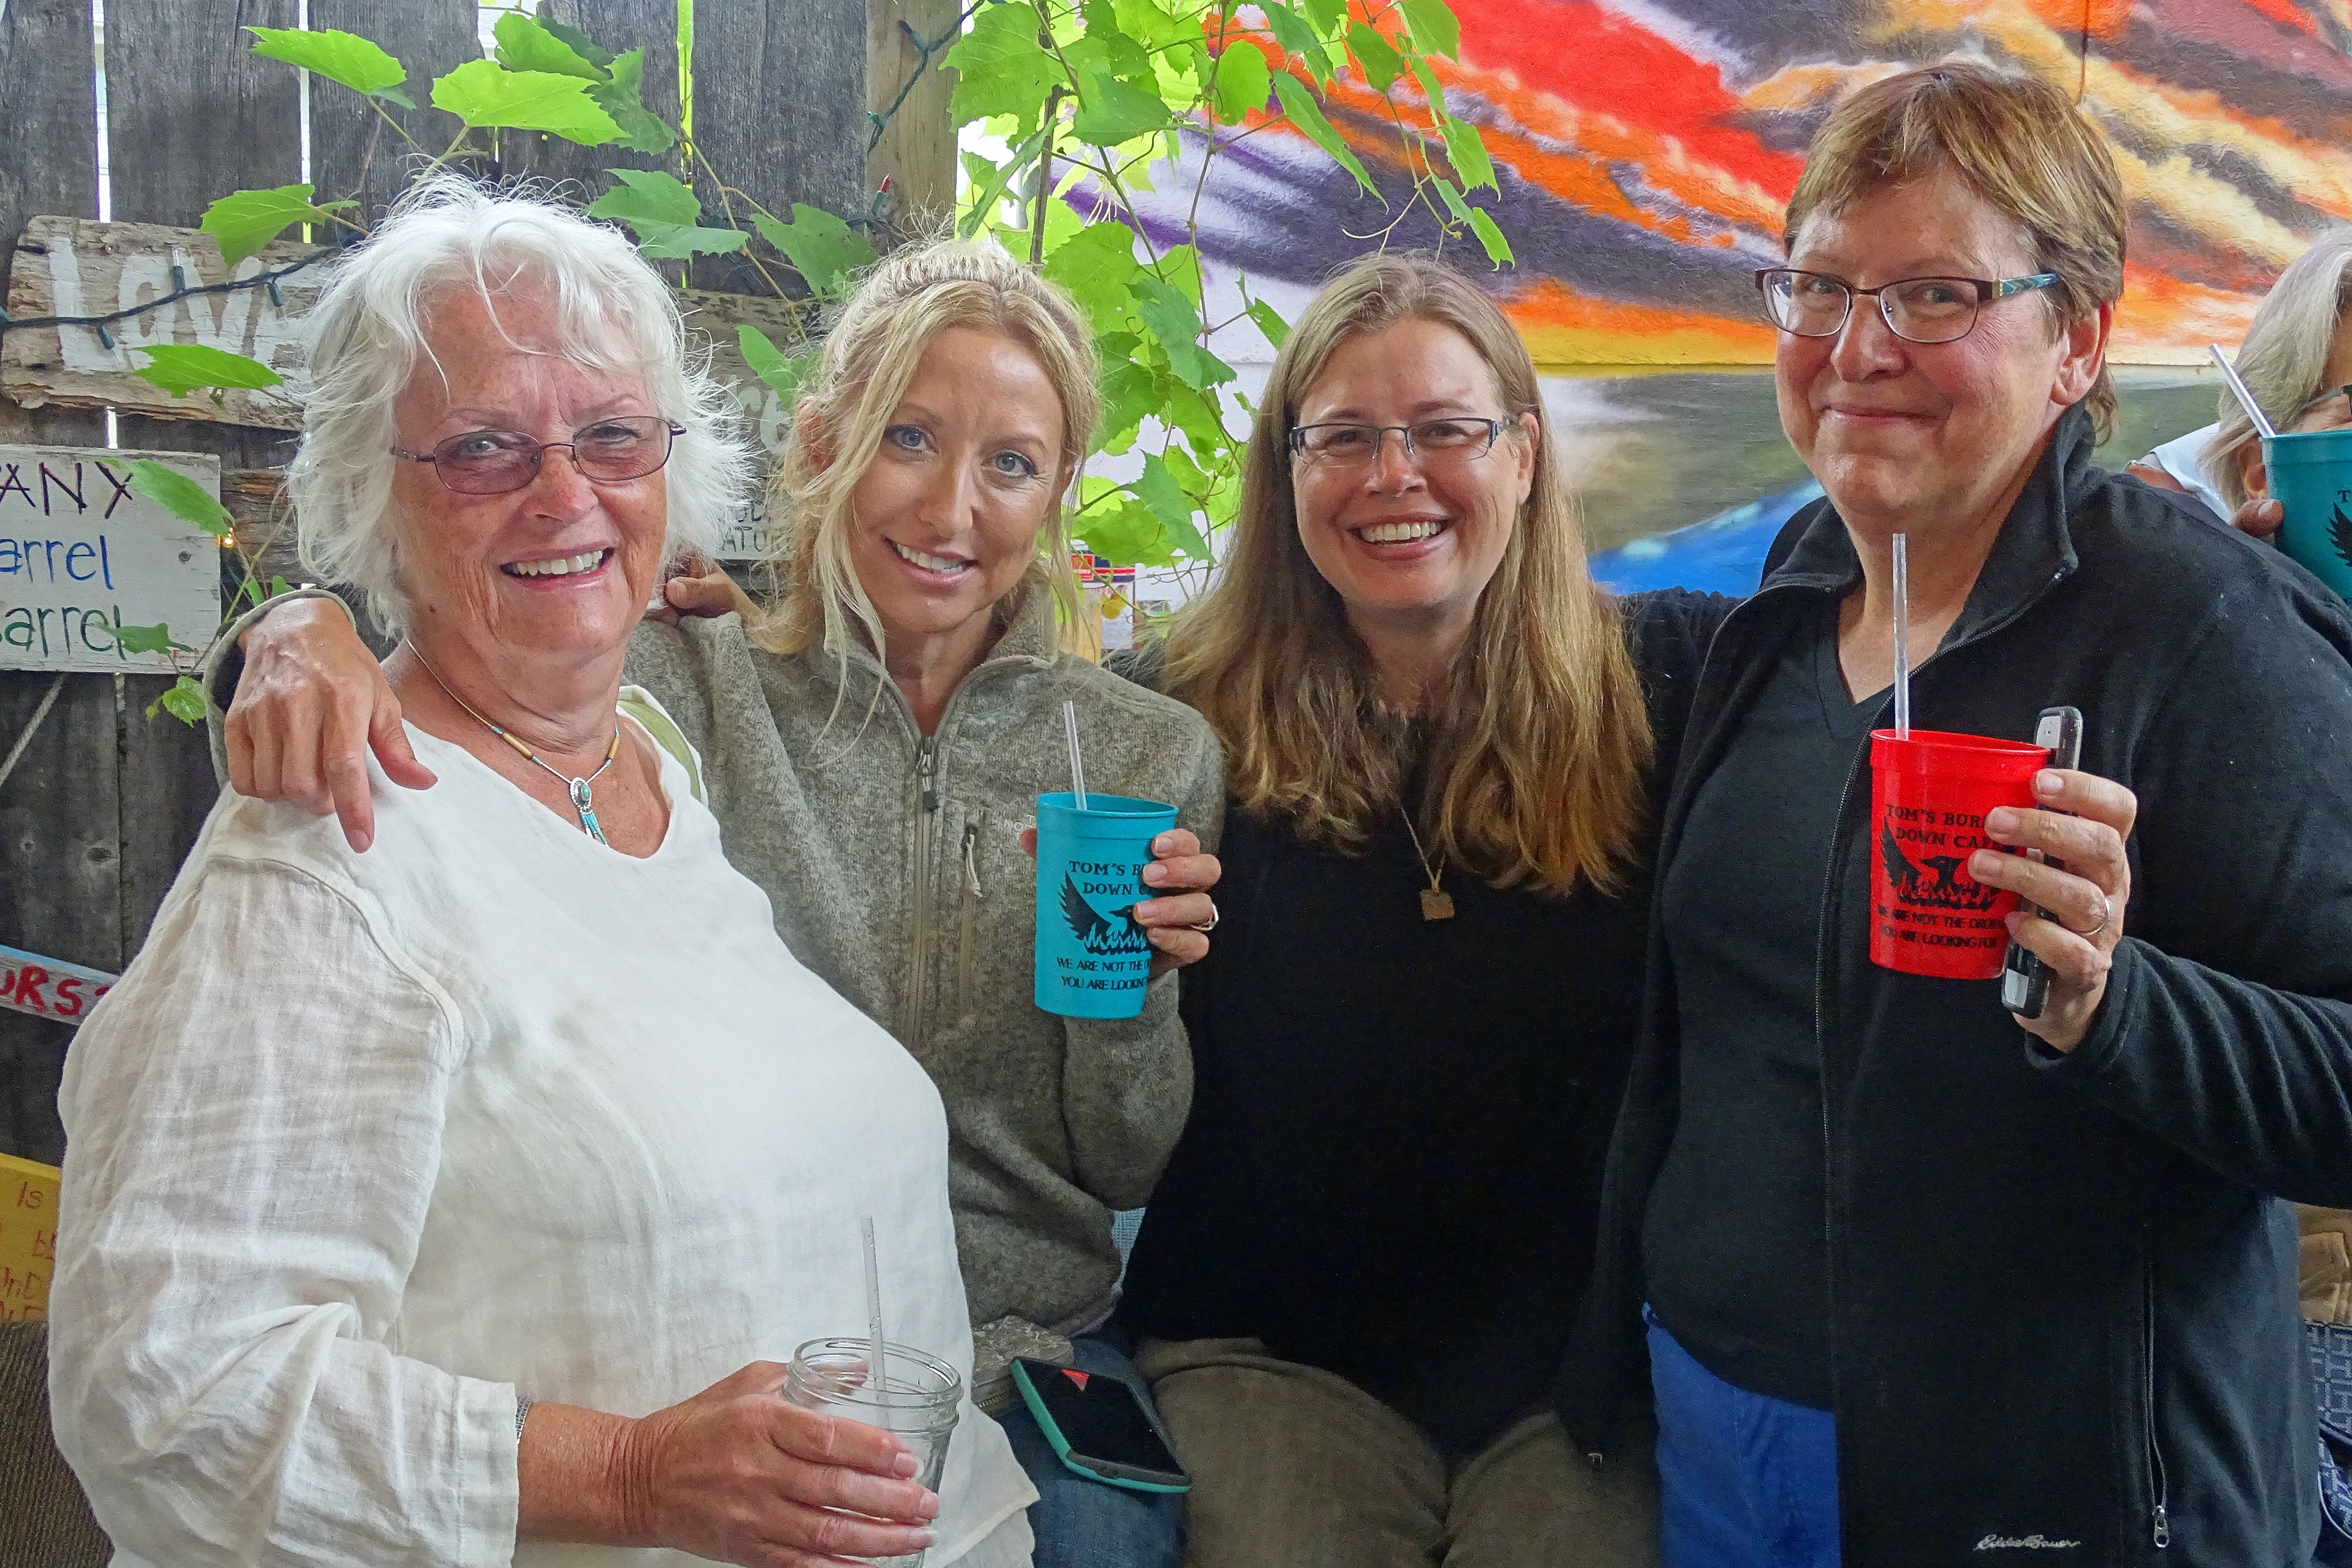 Four ladies smiling and two holding drinks.